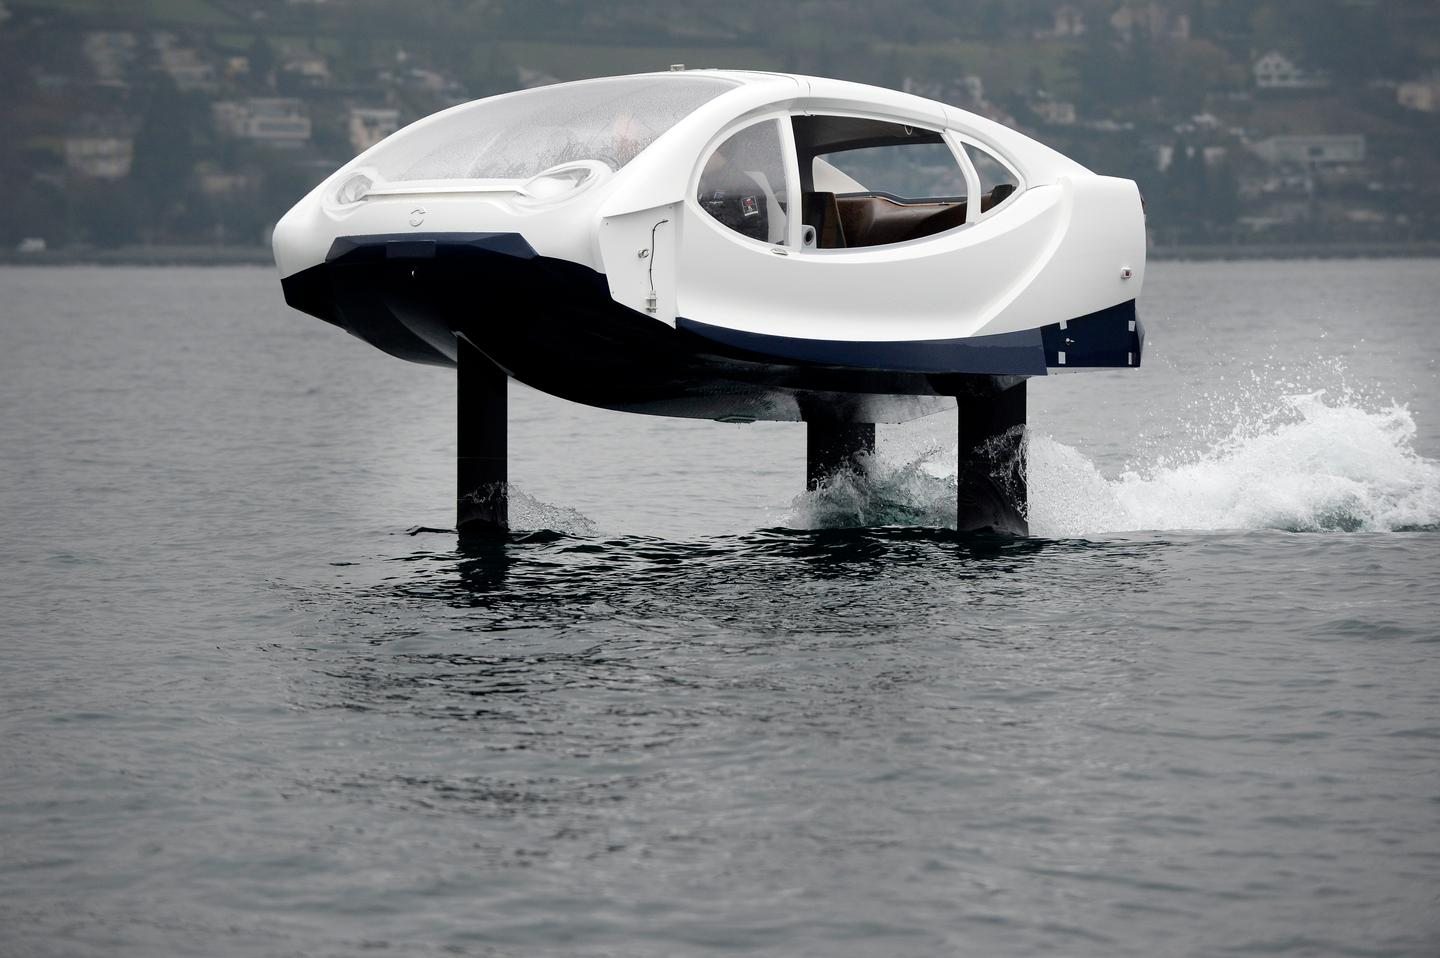 Riding high: this electric hydrofoiling bubble sits some 18 inches over the water